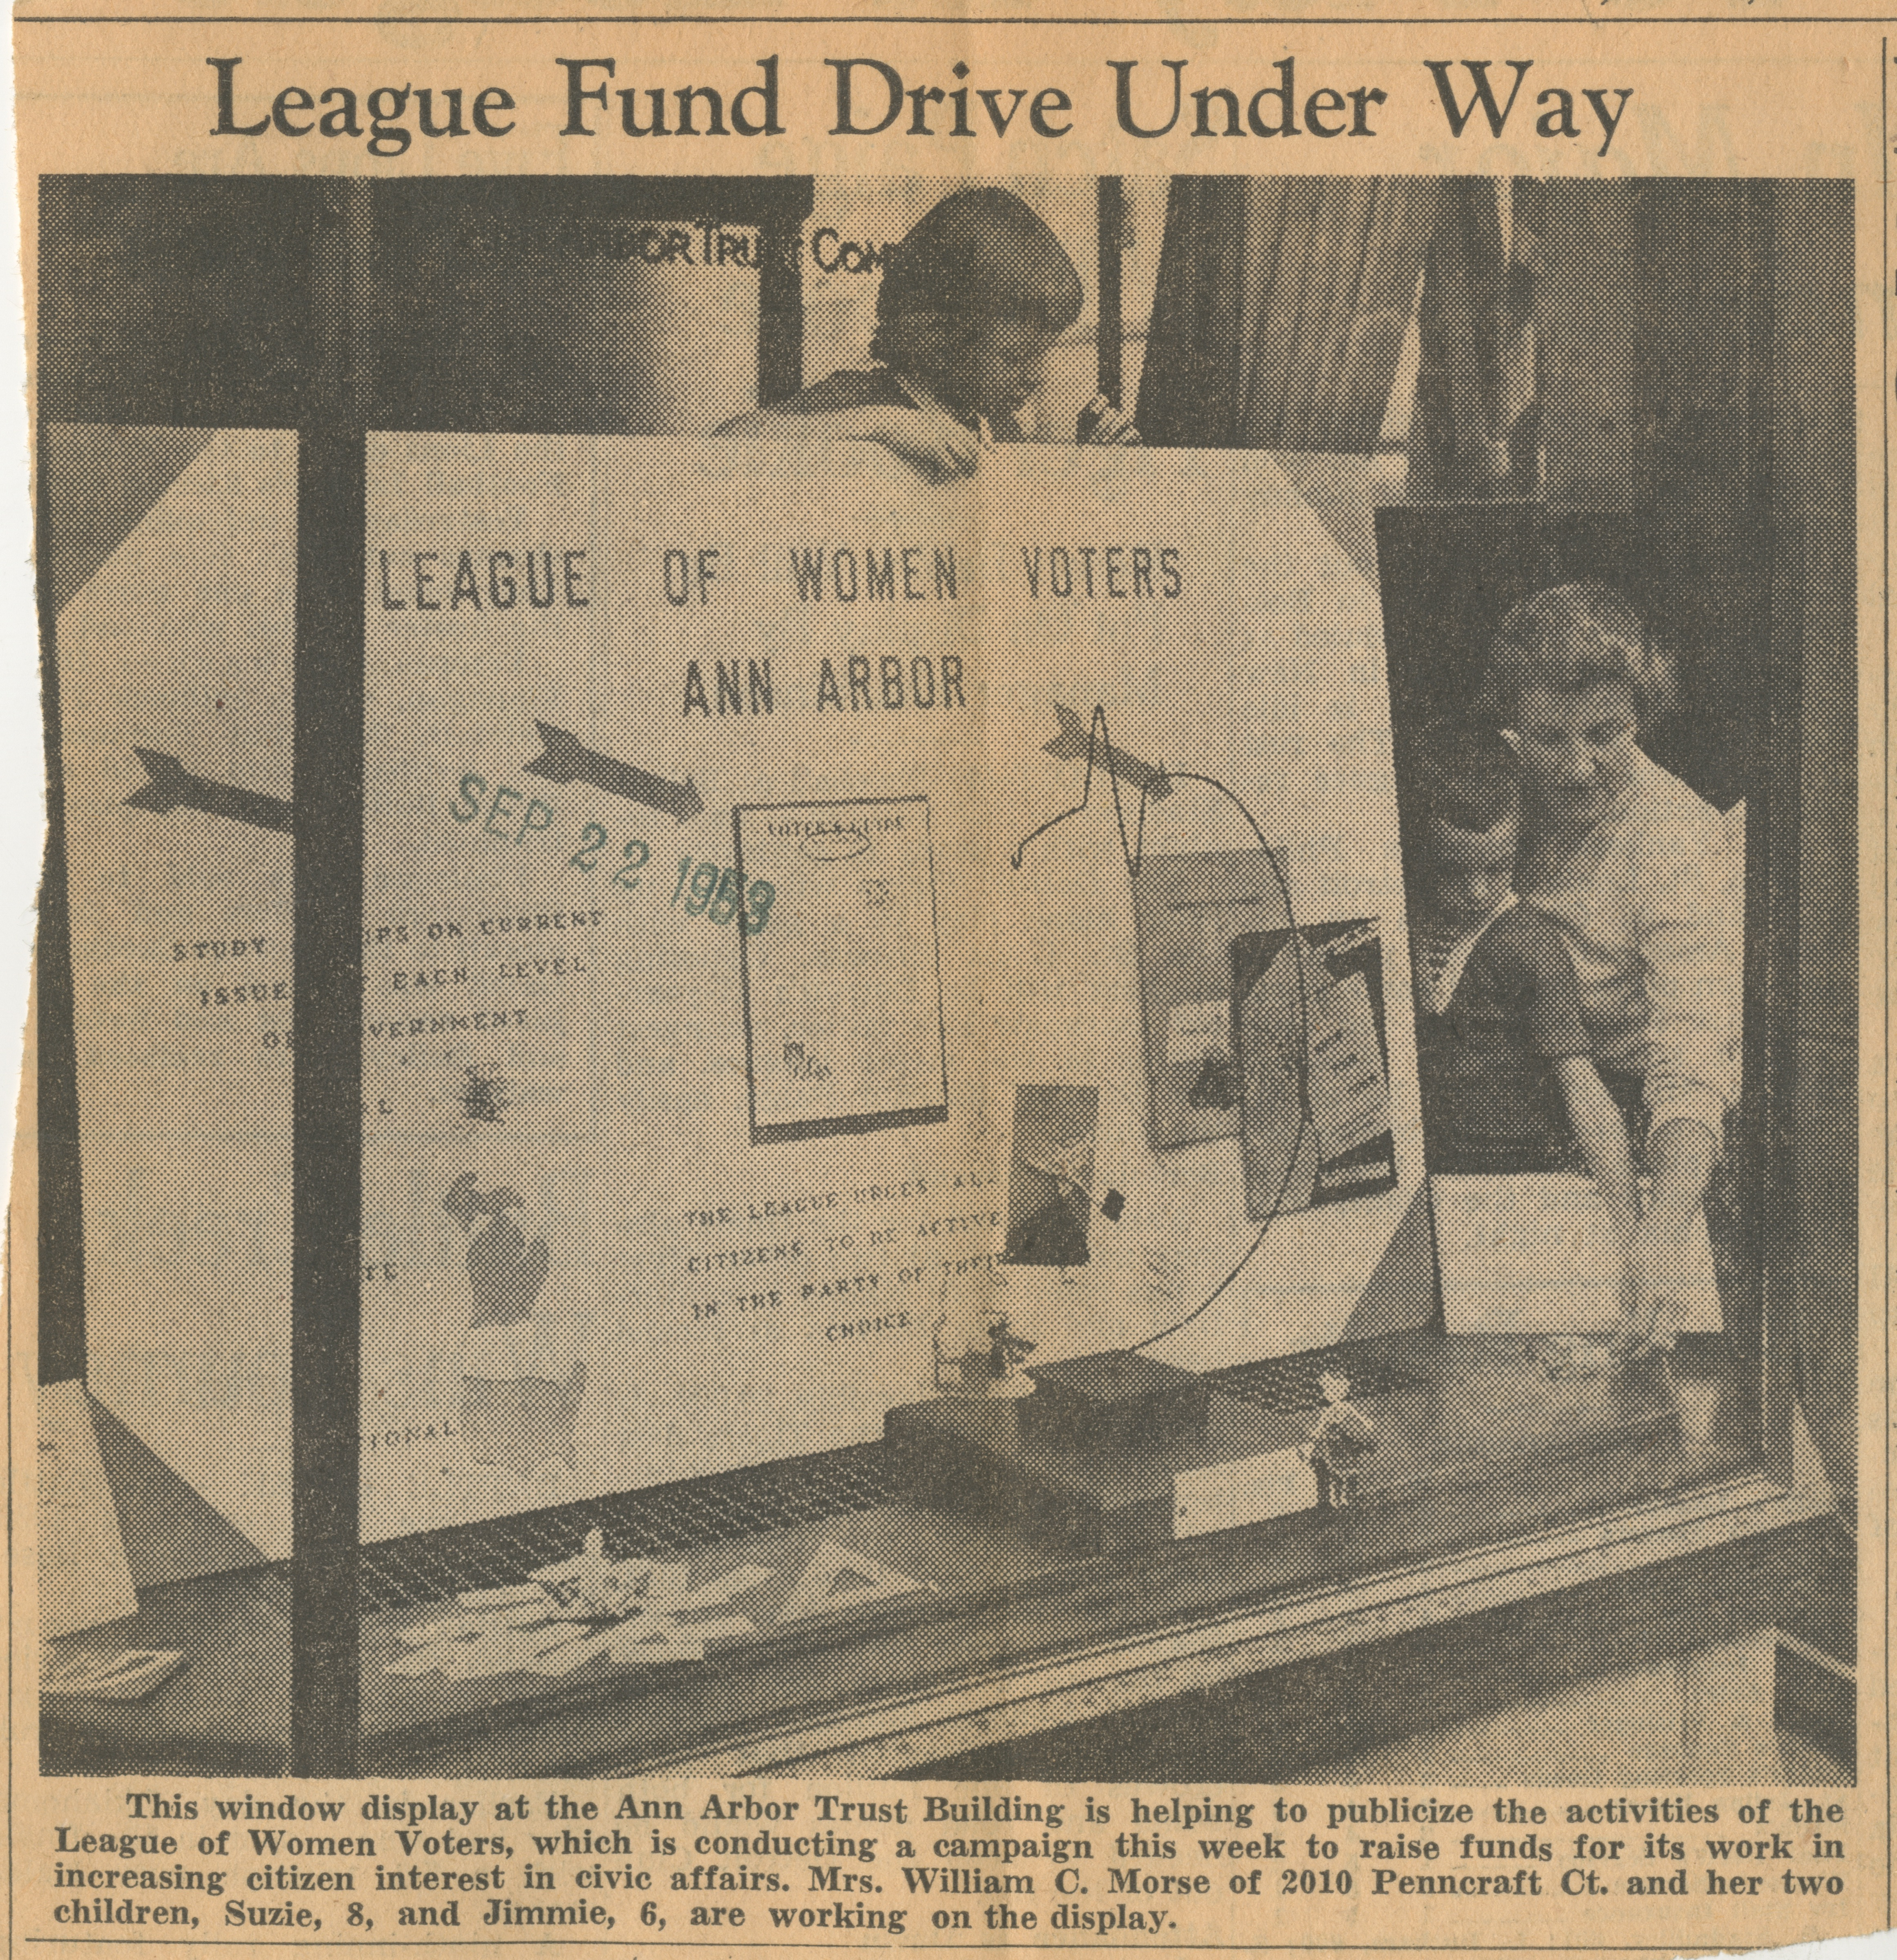 League Fund Drive Under Way image